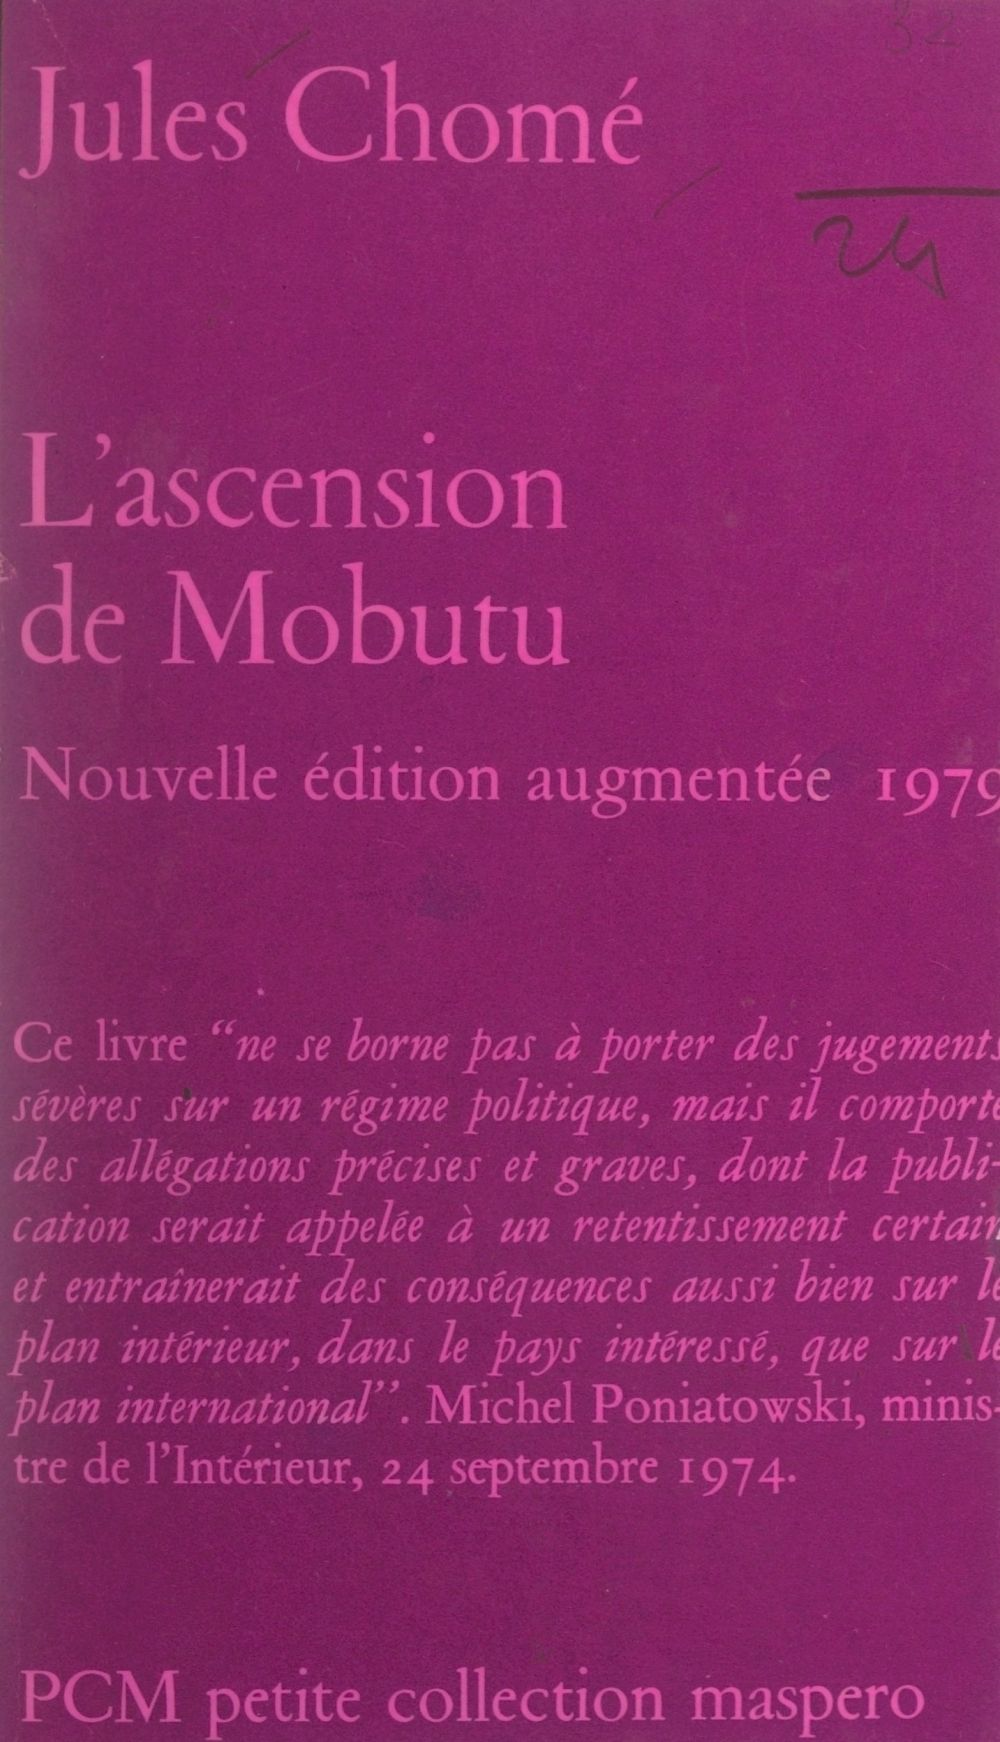 L'ascension de Mobutu